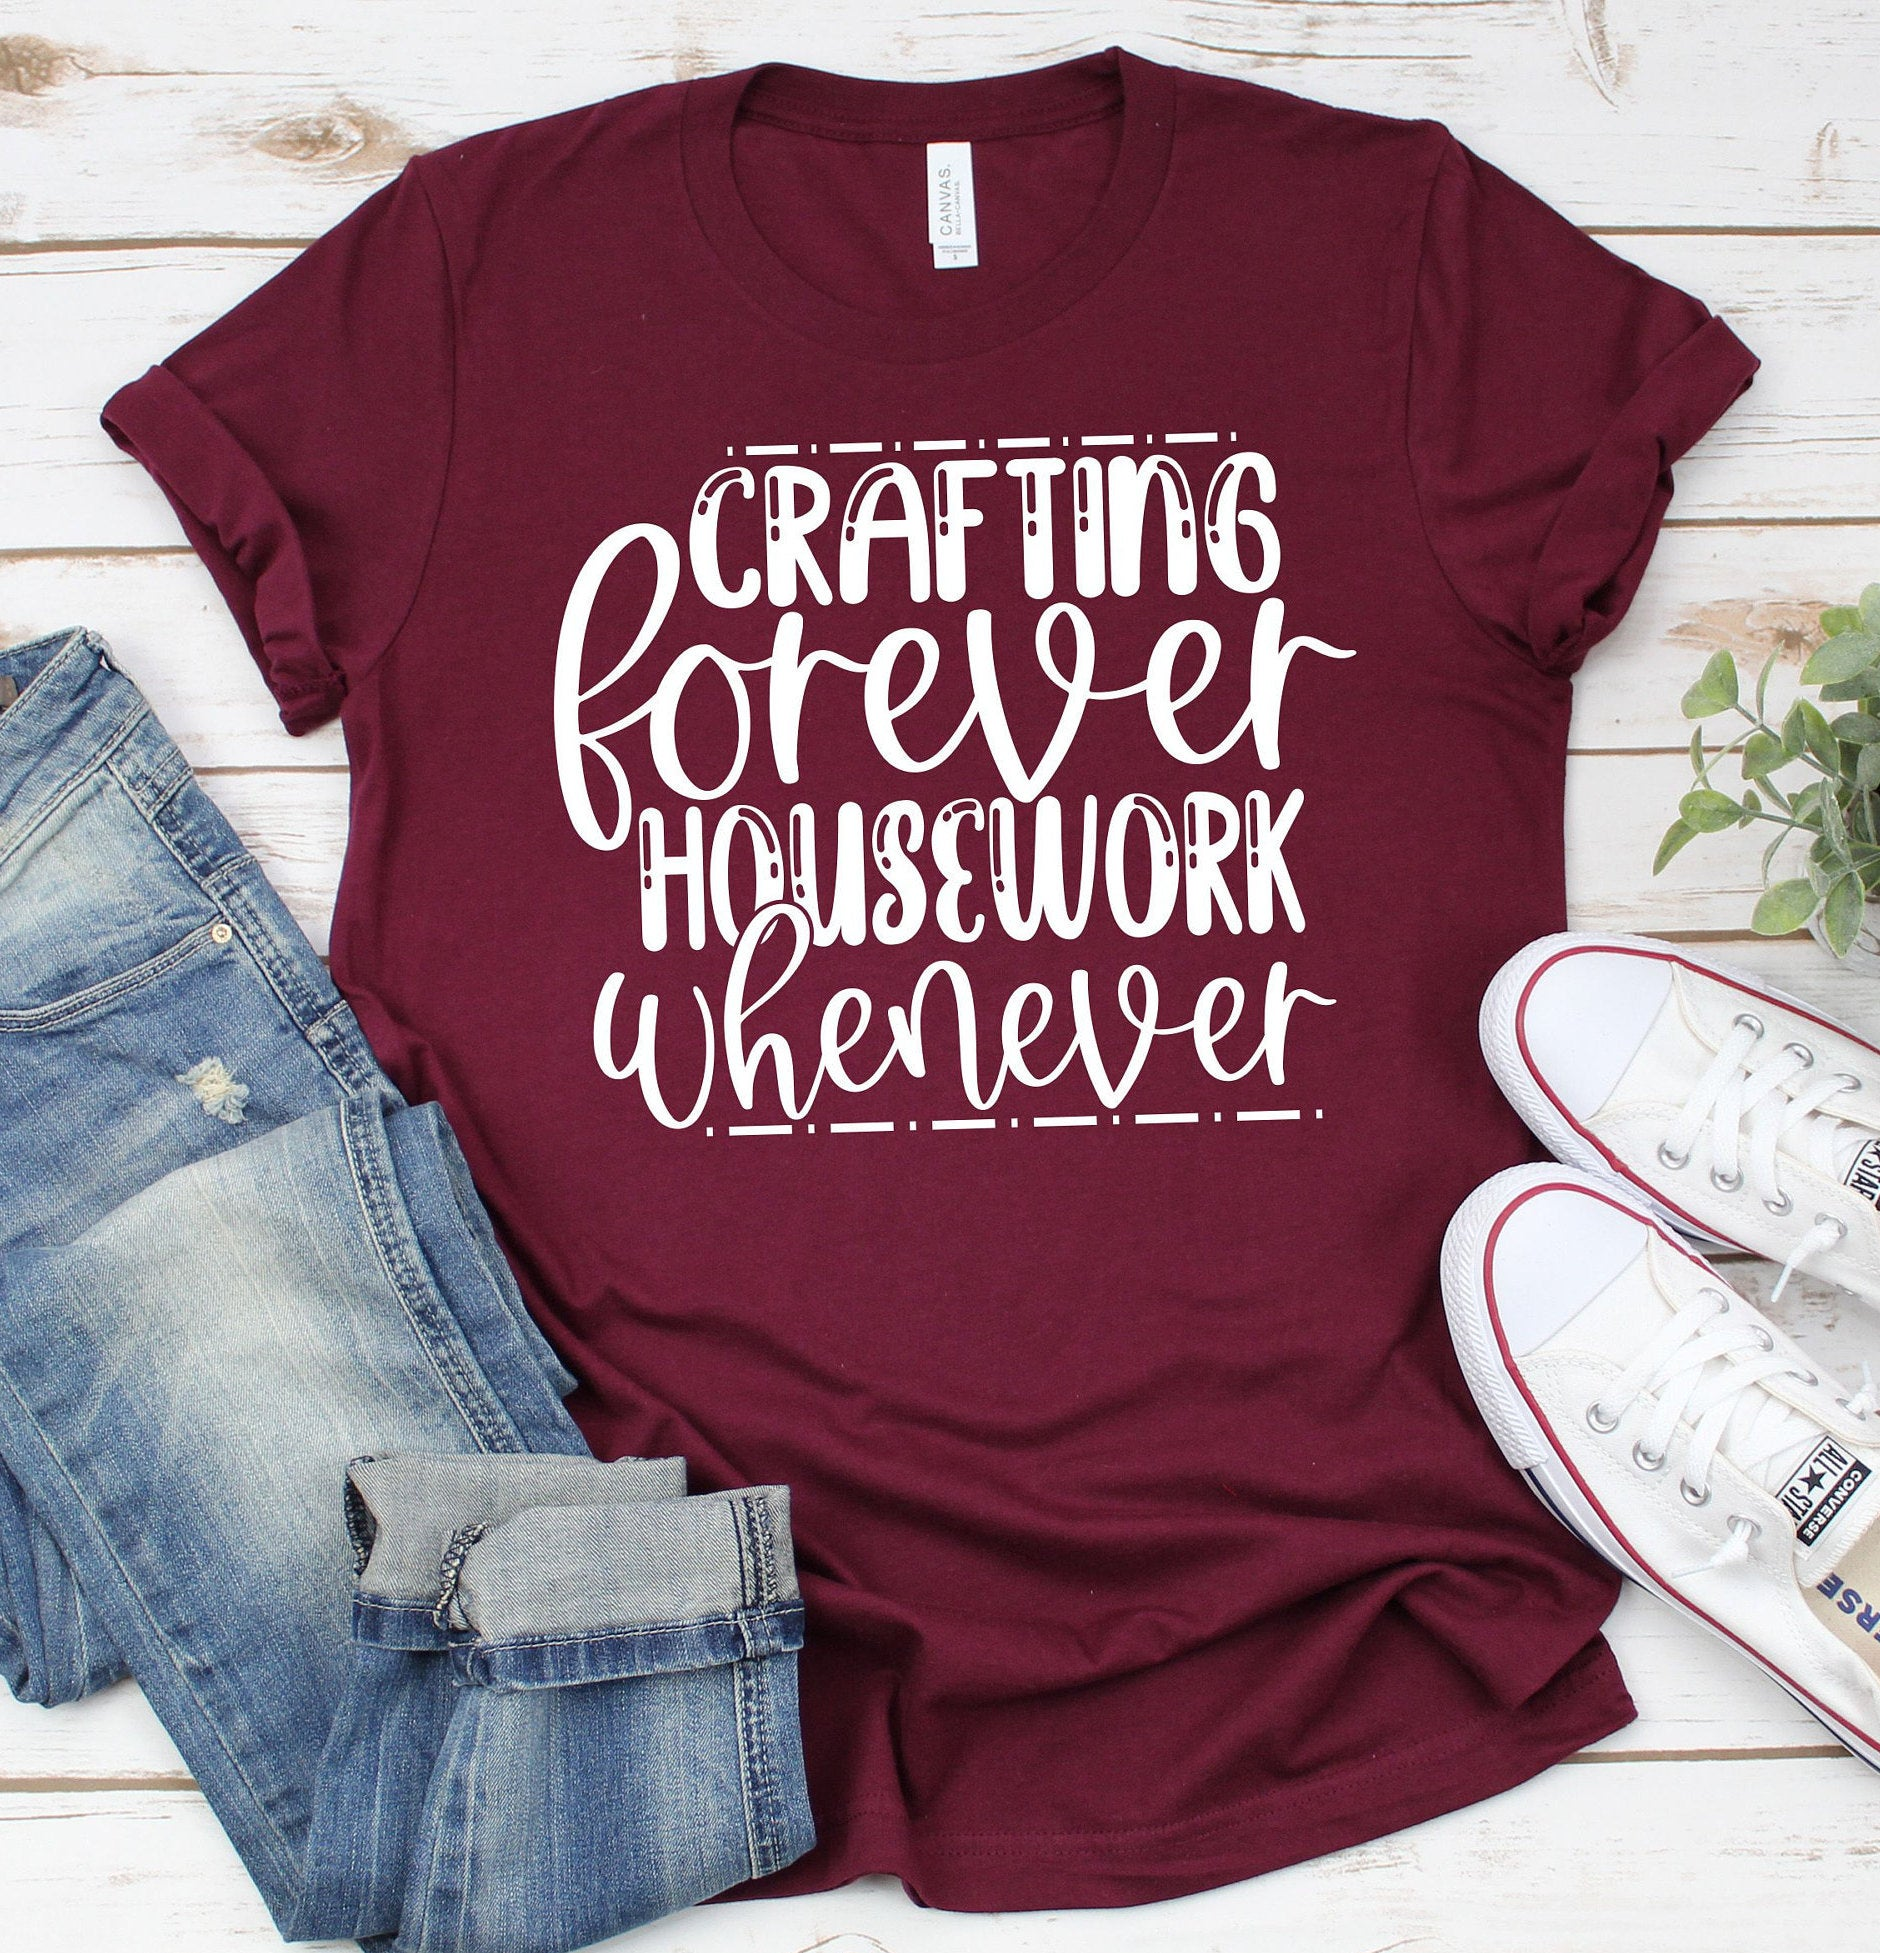 Crafting-forever-housework-never-svg-housework-svg-crafty-saying-craft-svg-craft-svg-designs-craft-cut-file-craft-svg-for-cricut-60512e9a